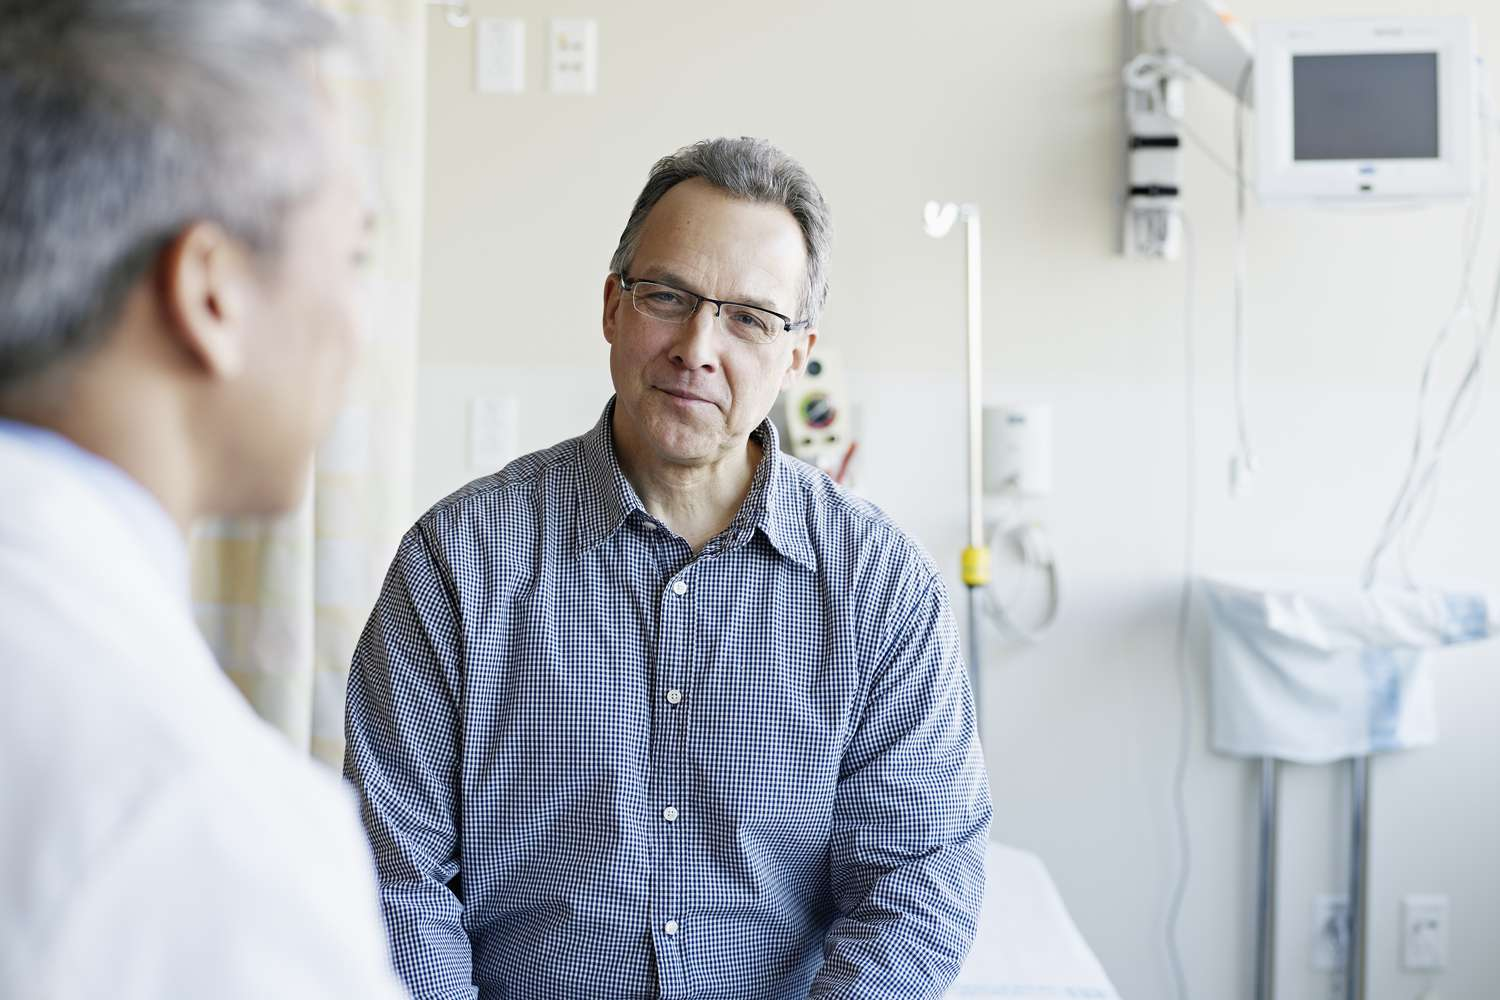 A doctor talking to his patient in a hospital room